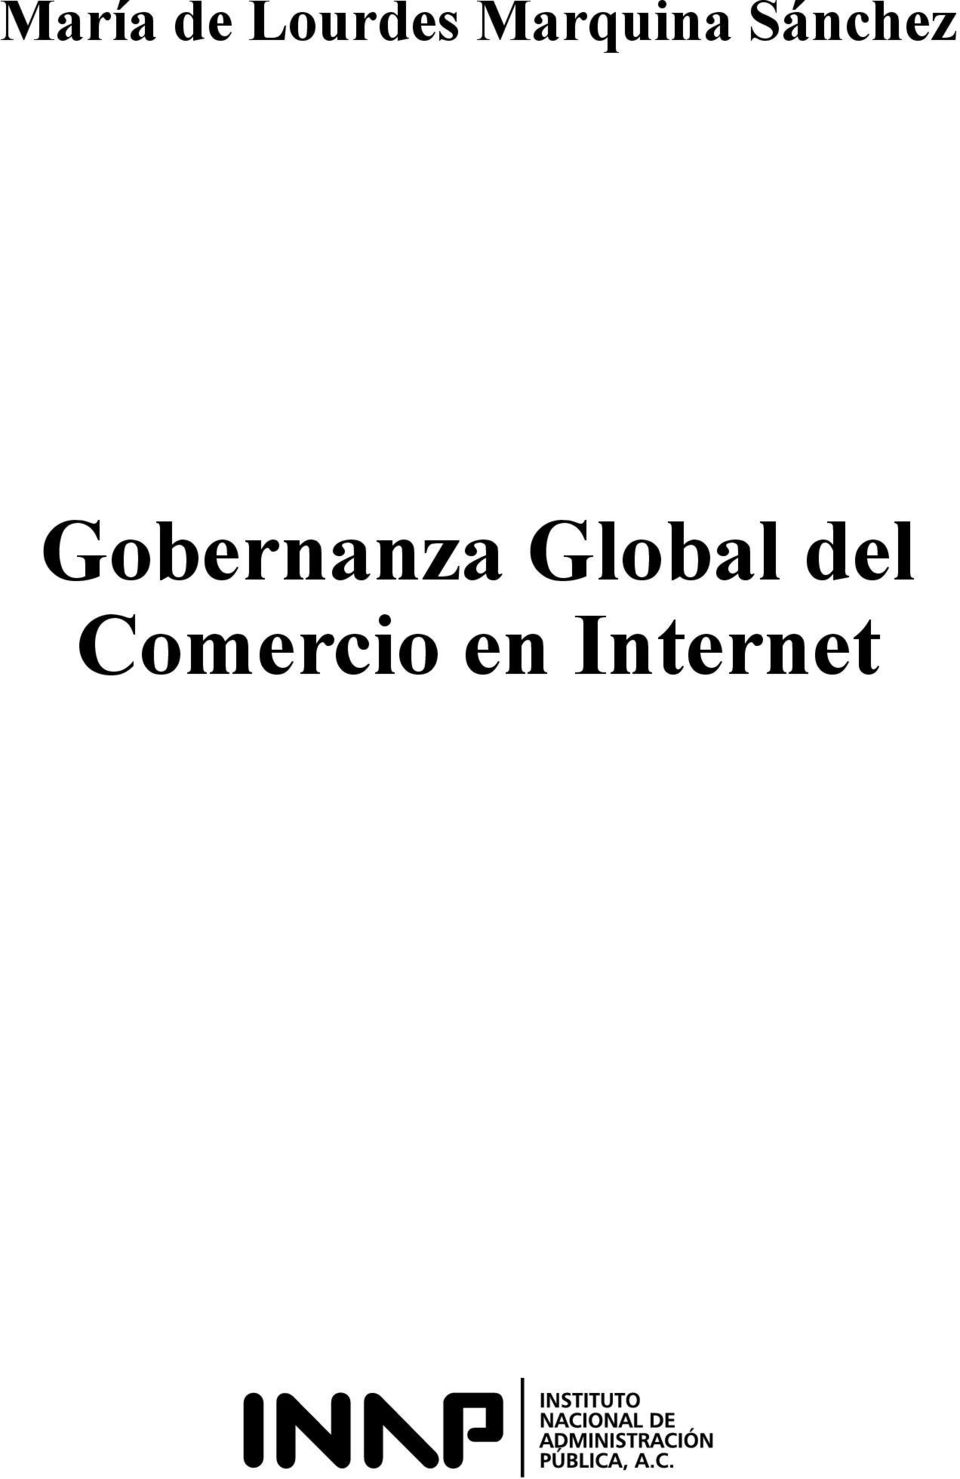 Gobernanza Global